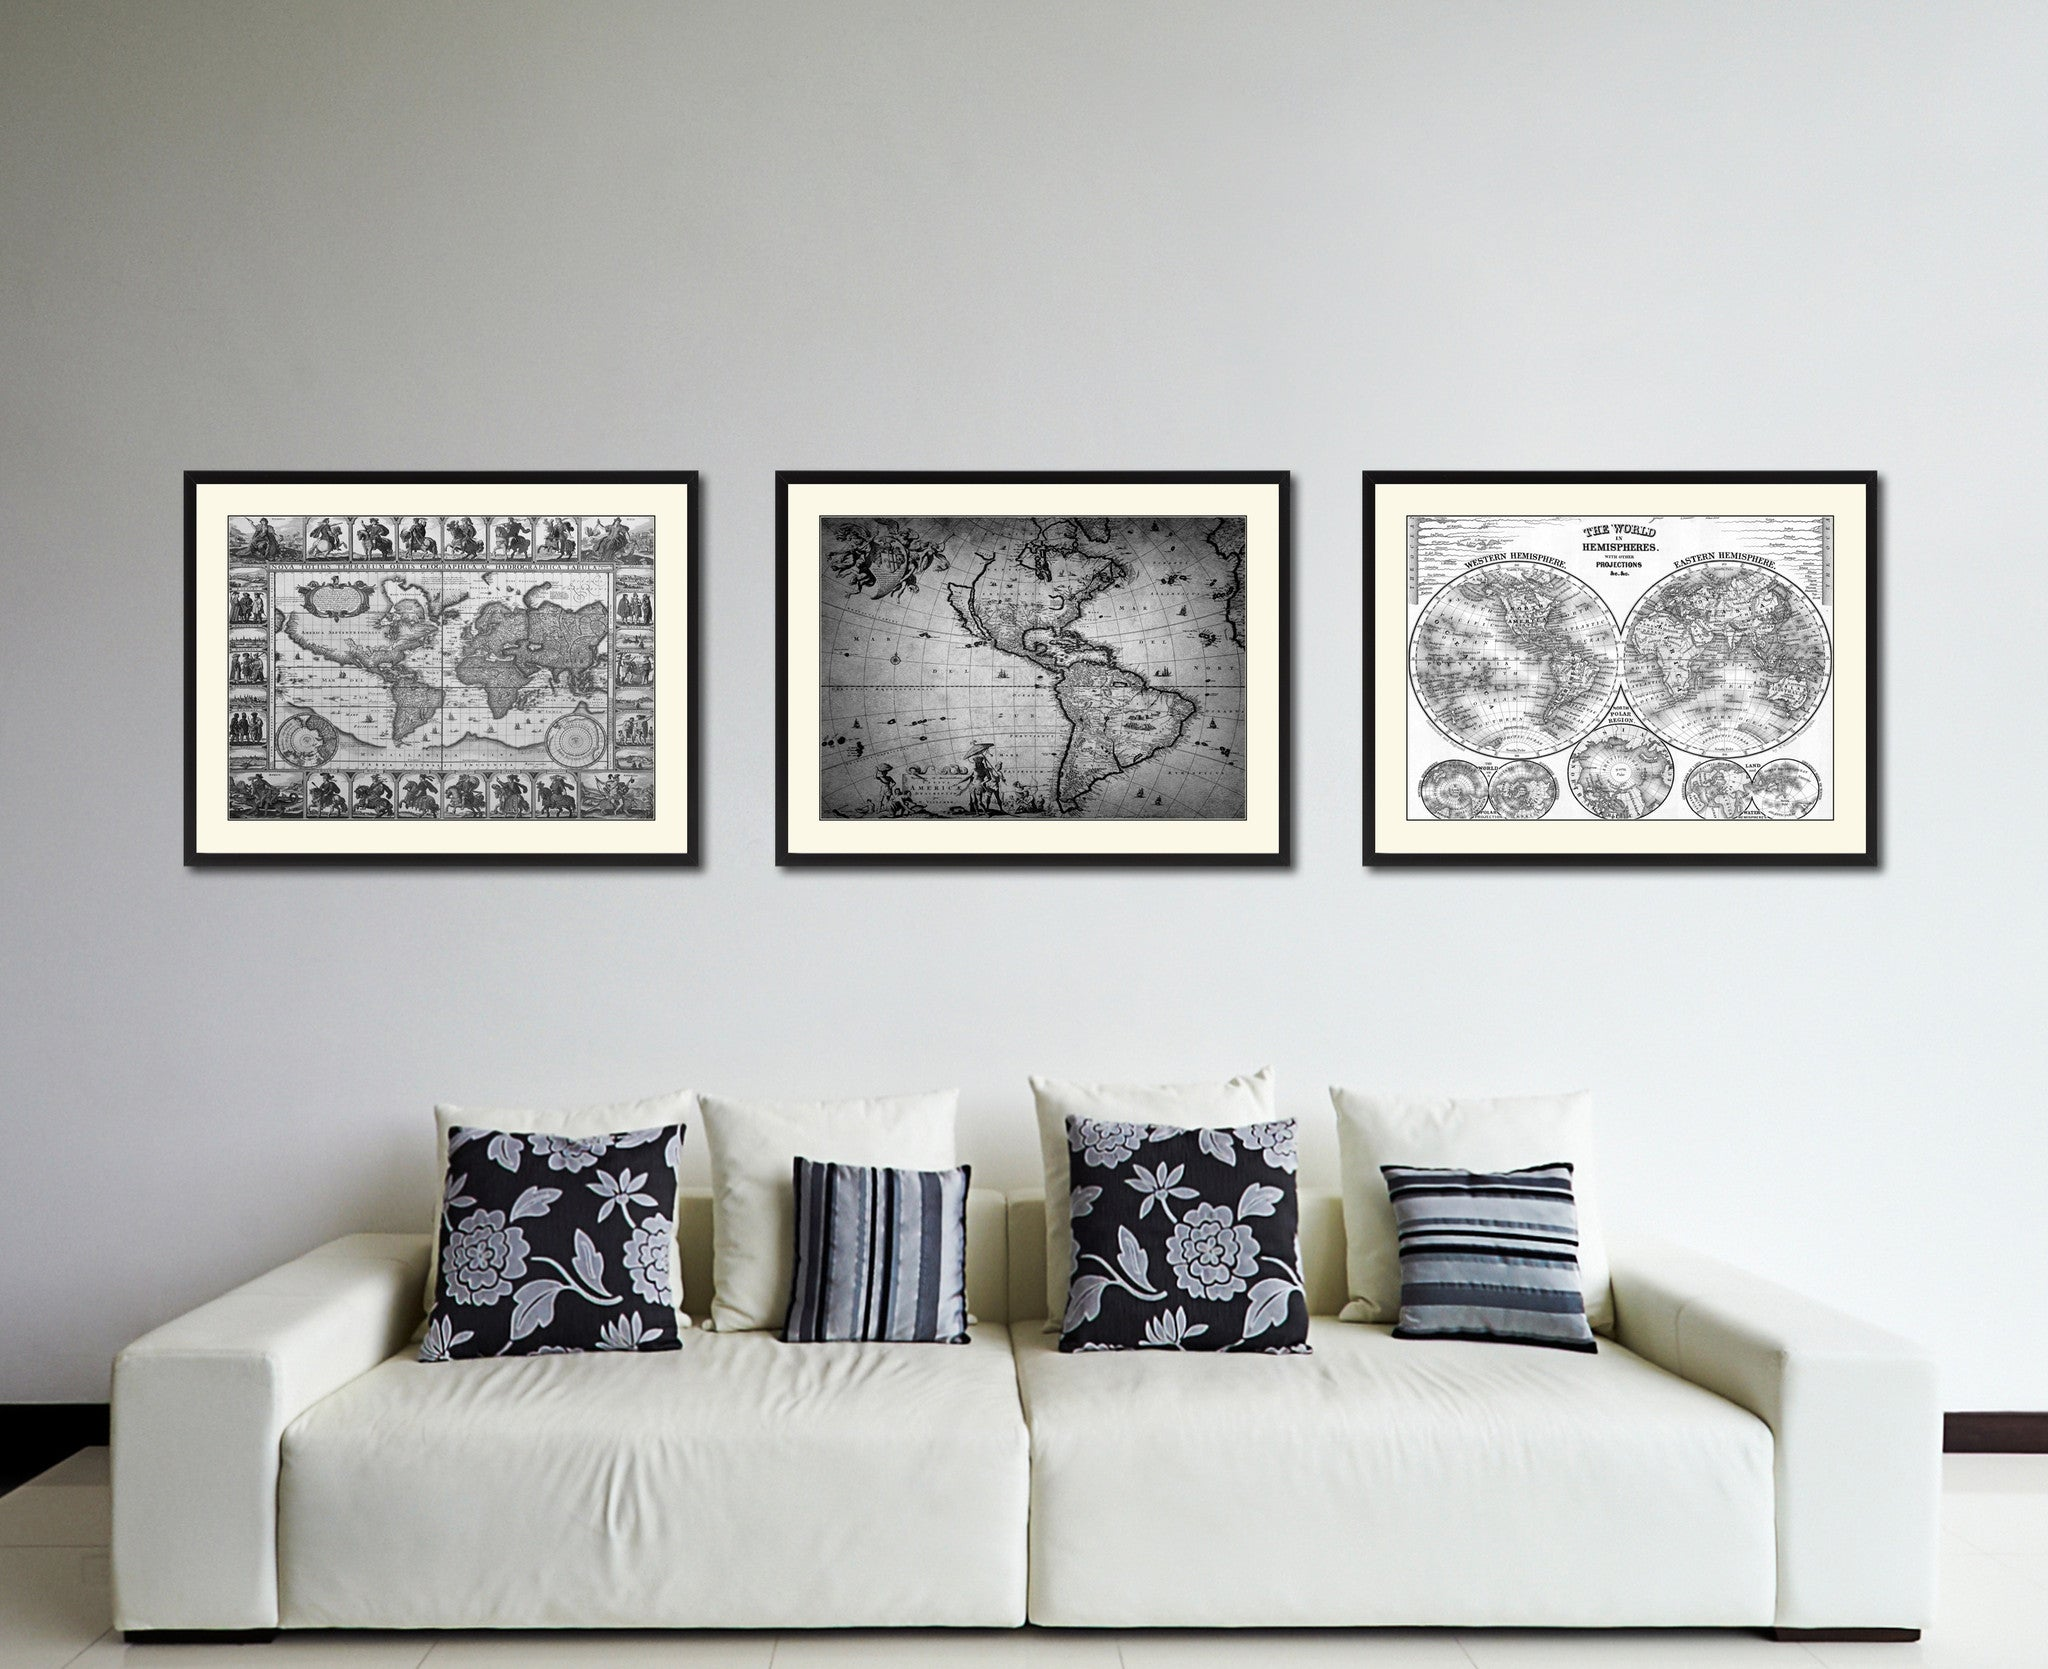 America Vintage B&W Map Canvas Print, Picture Frame Home Decor Wall Art Gift Ideas